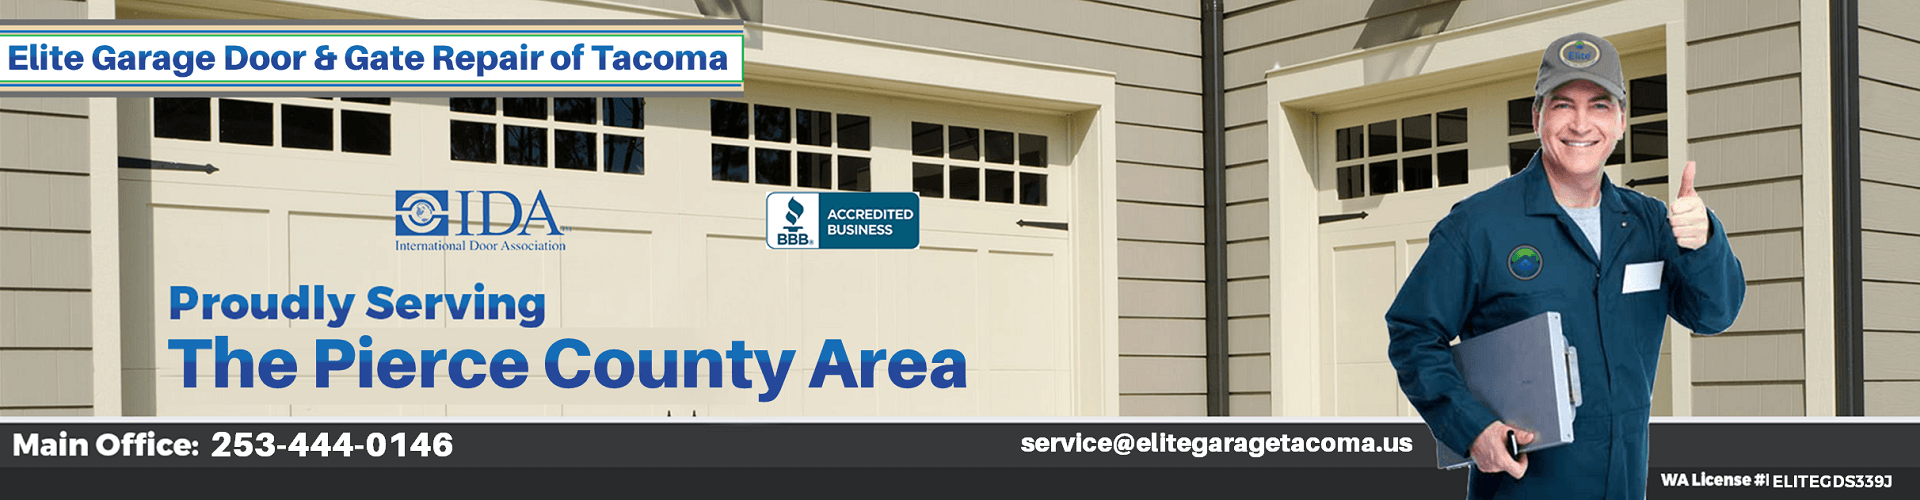 Elite® Garage Door & Gate Repair Of Tacoma WA & Pierce County - Main Banner